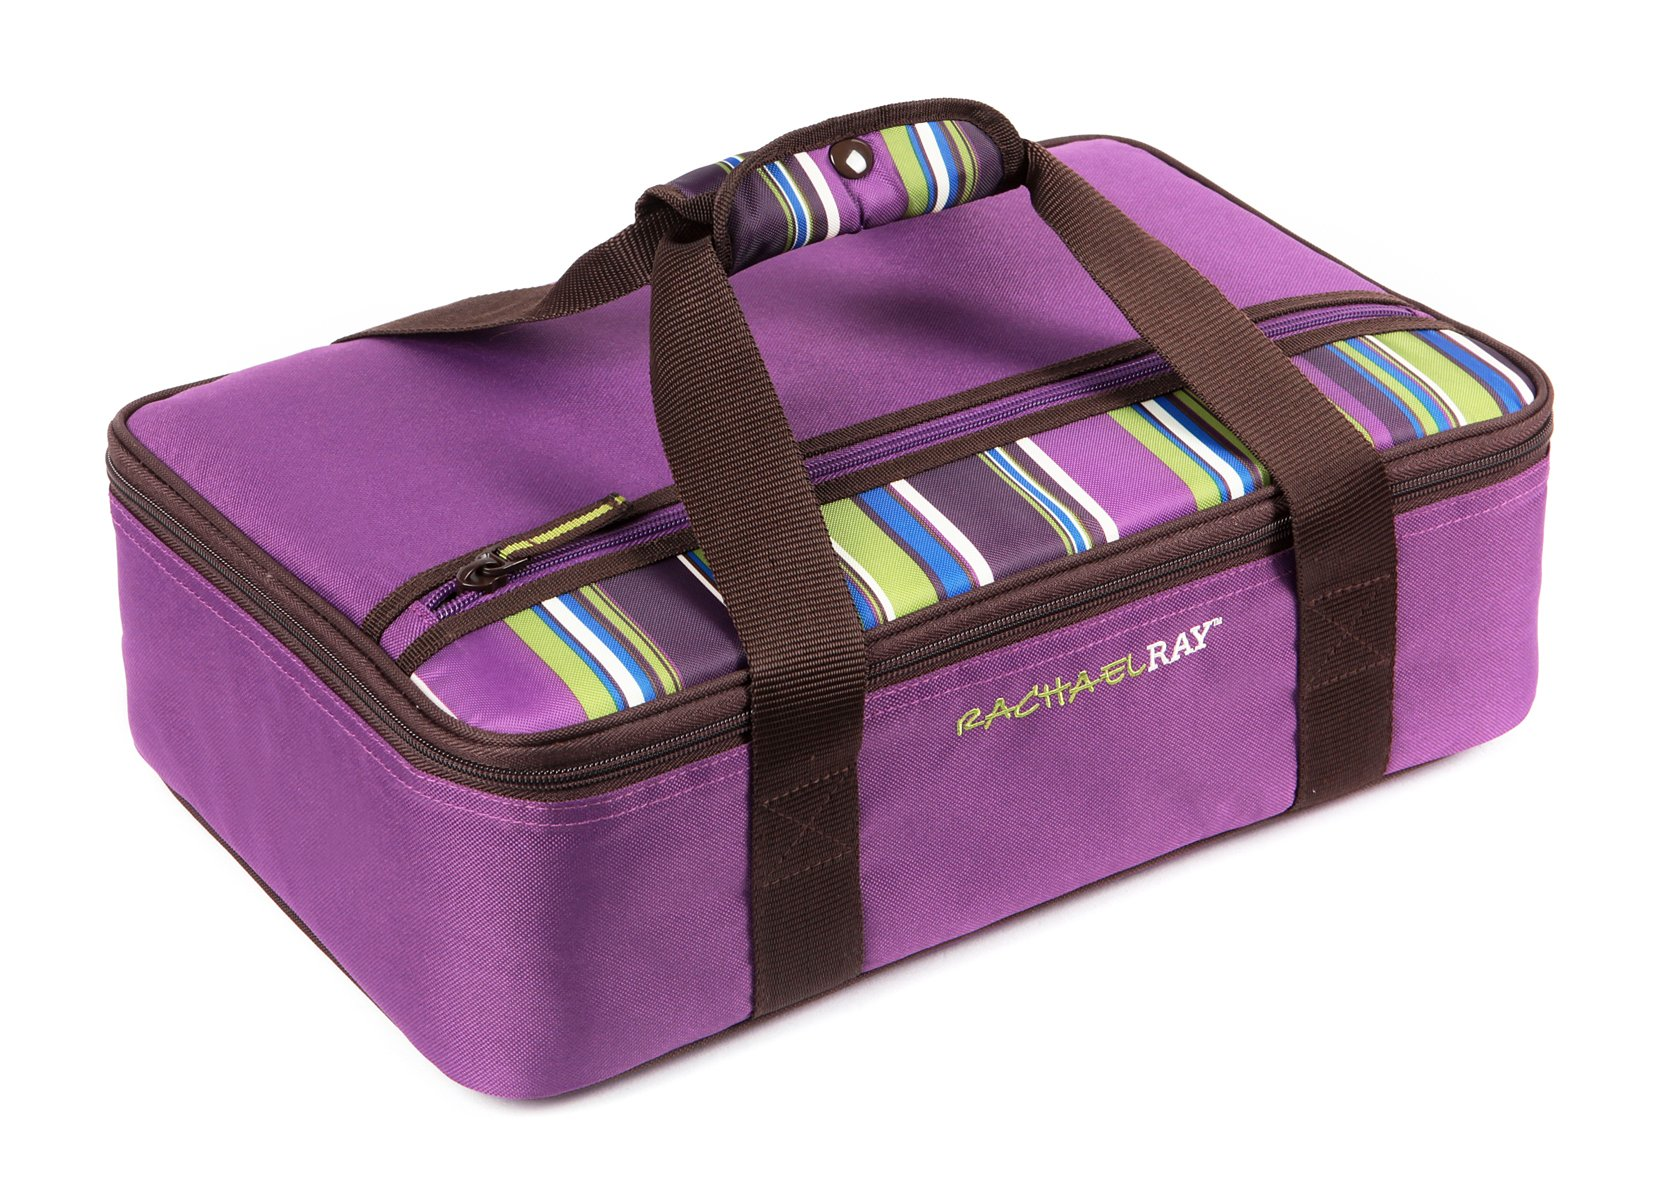 Rachael Ray Lasagna Lugger, Insulated Casserole Carrier for Potluck Parties, Picnics, Tailgates - Fits 9''x13'' Baking Dish, Purple